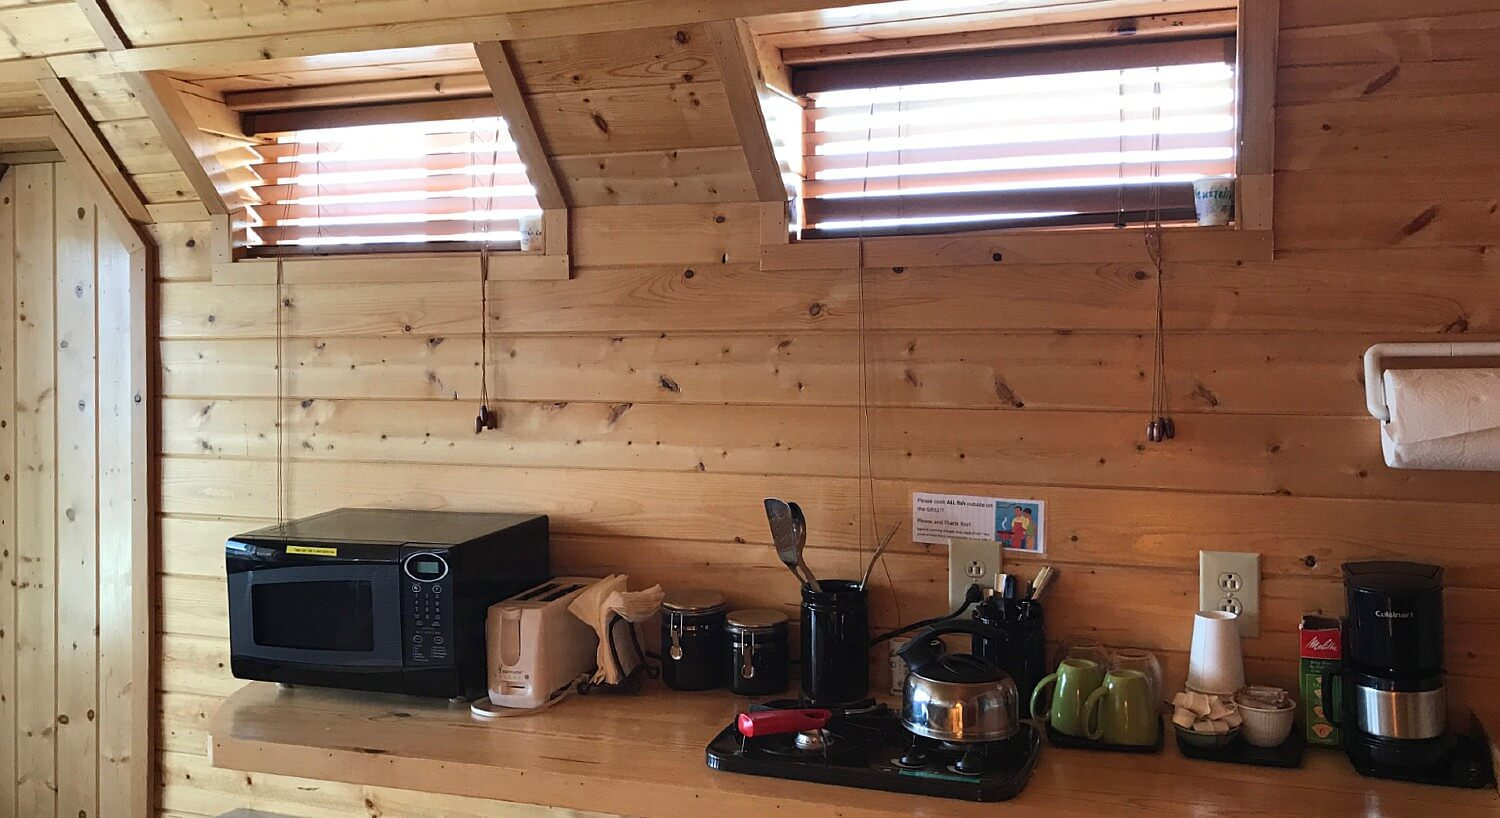 Kitchenette counter in a cabin with microwave, toaster, coffee pot and other kitchen essentials